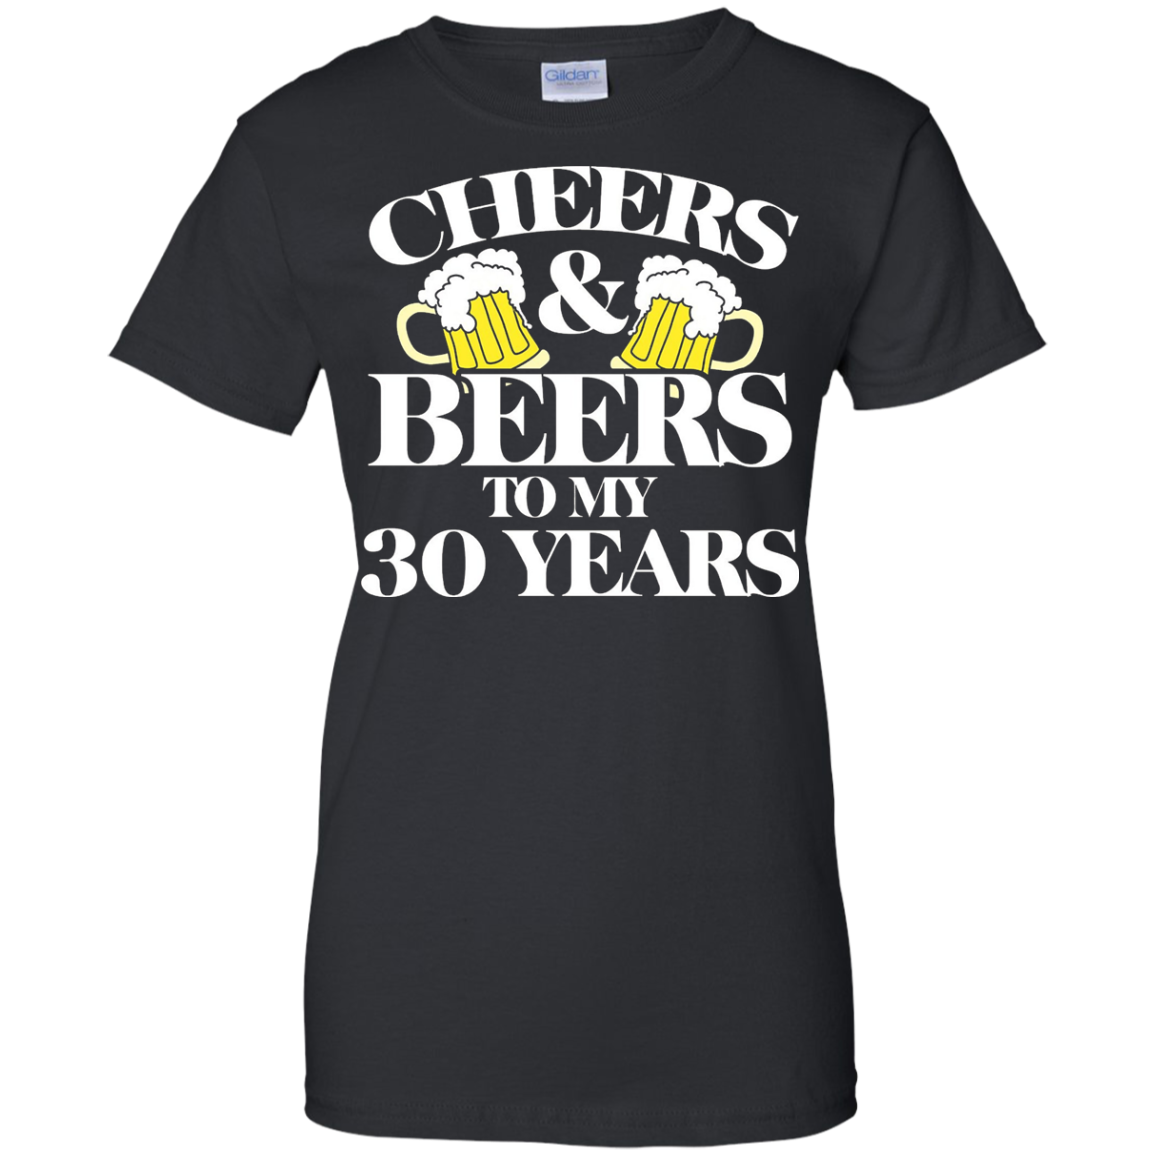 Cheers and Beers to my 30 years shirt 30th birthday t-shirt